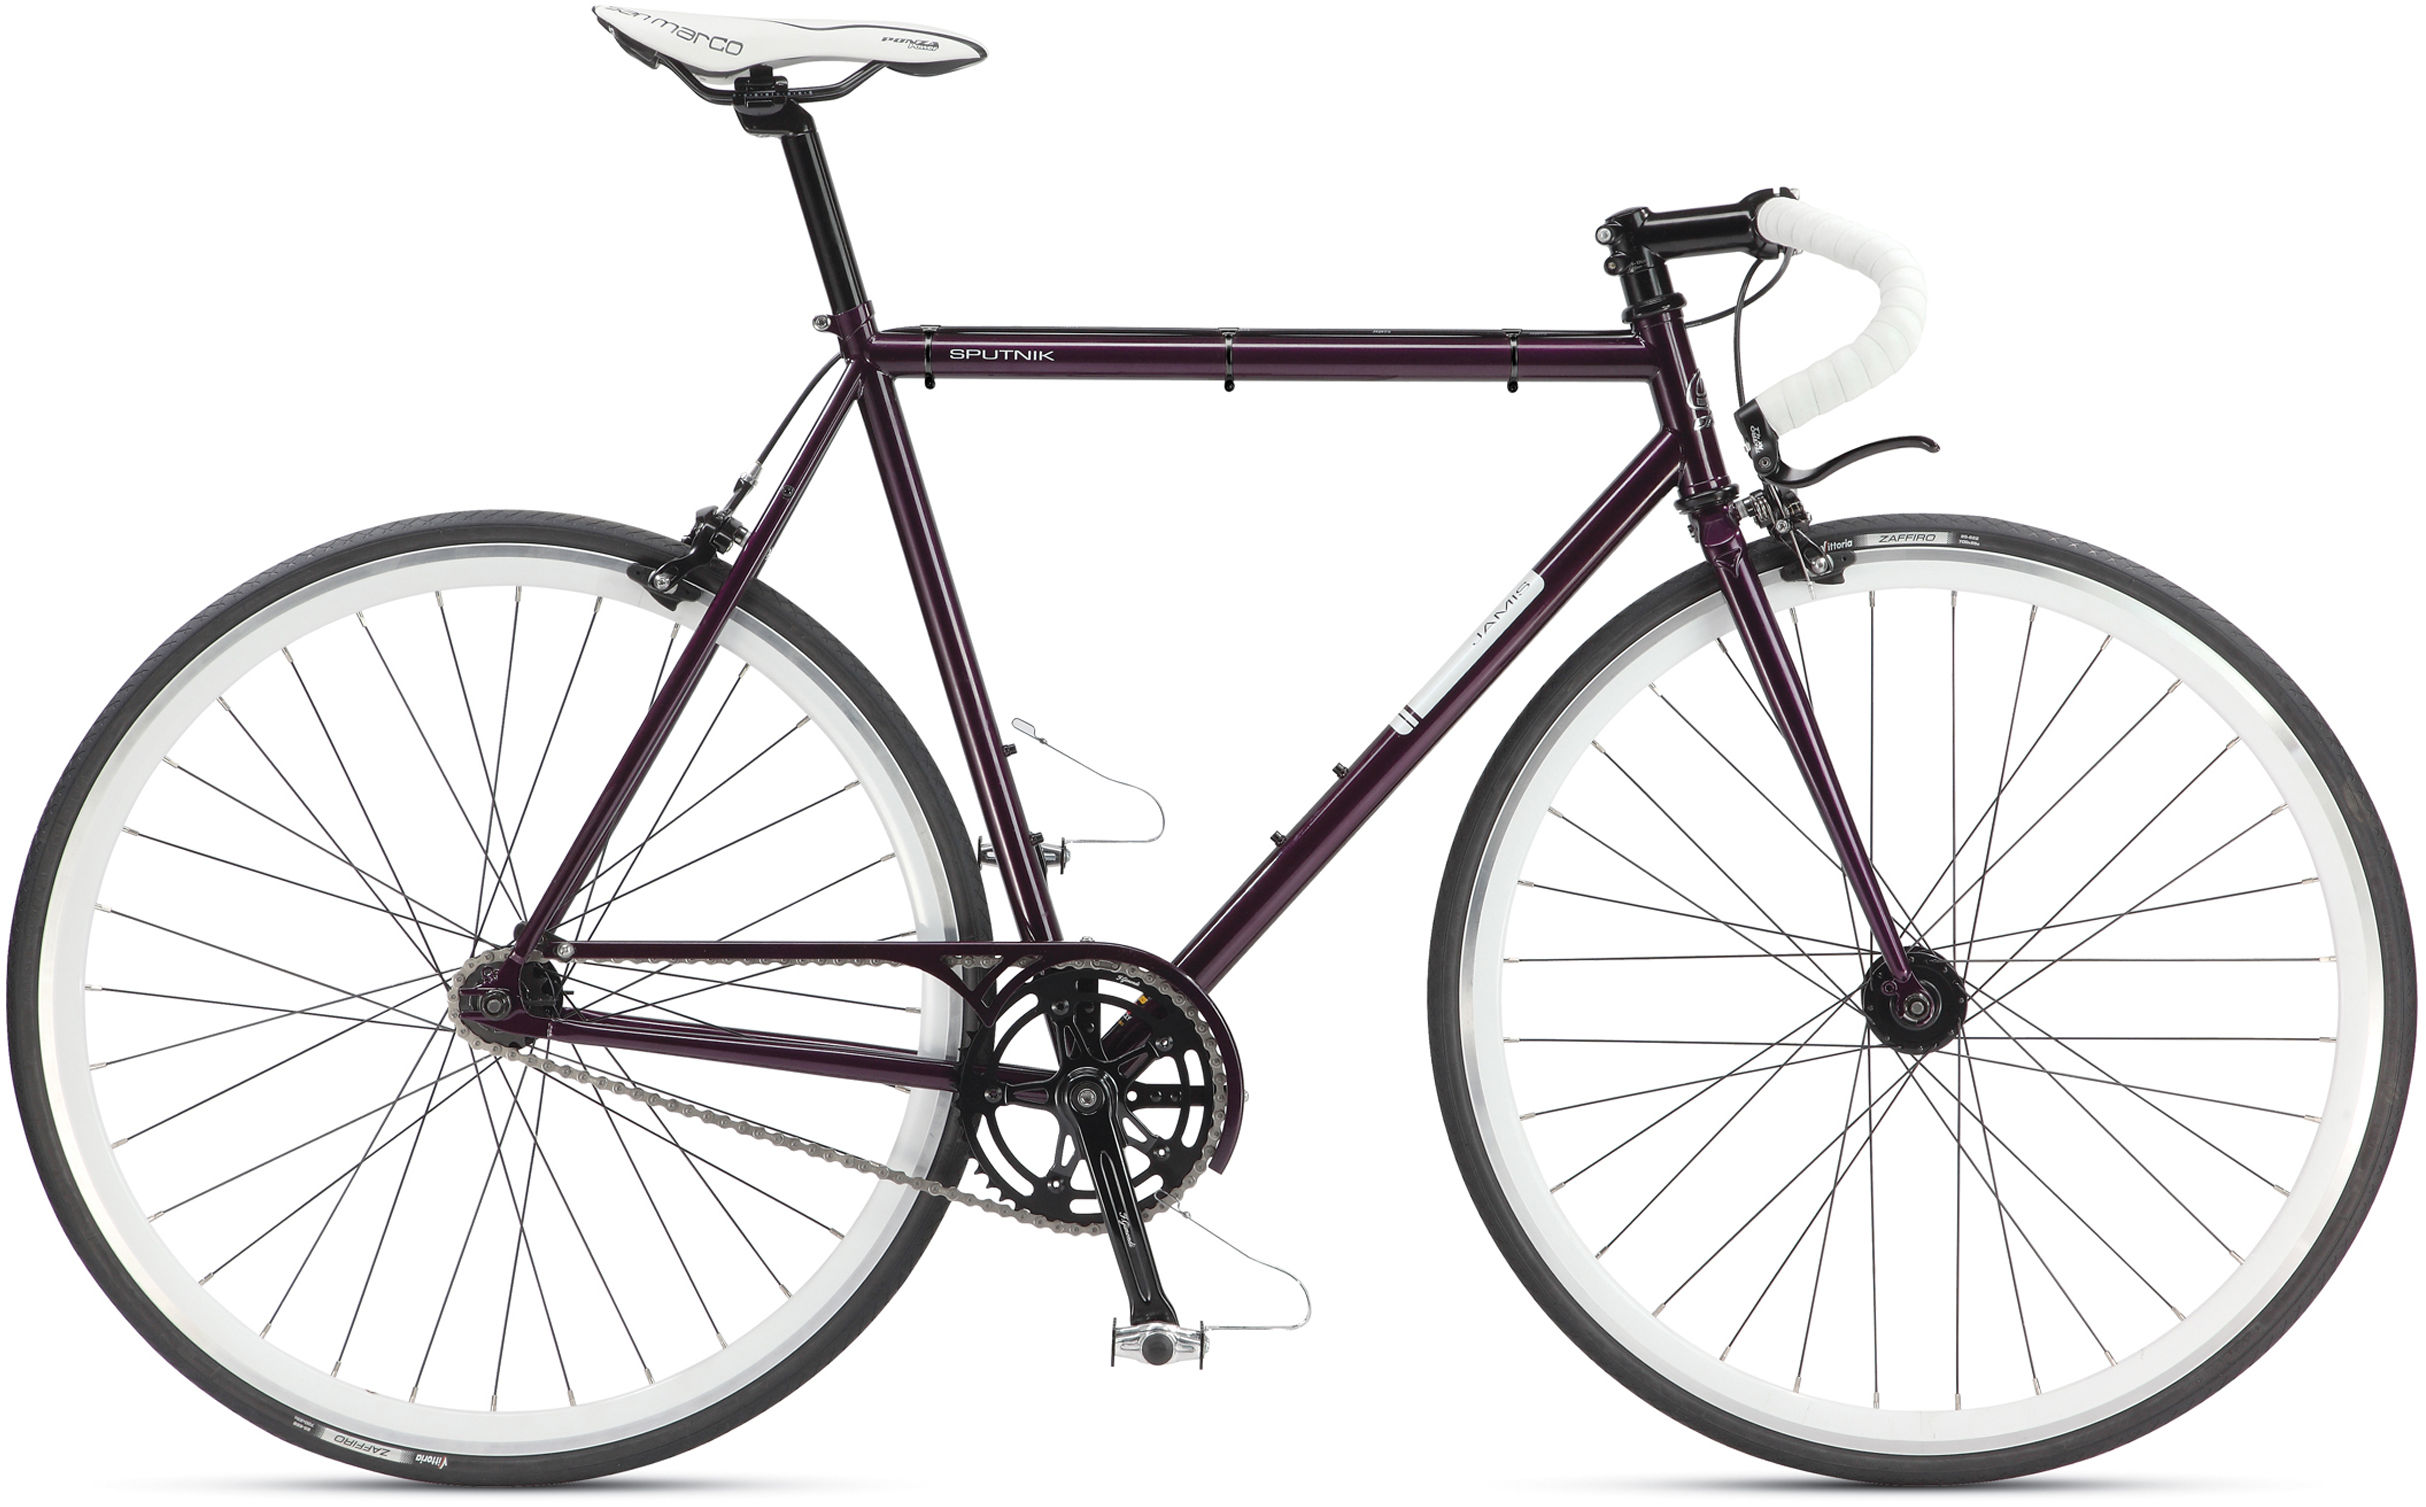 Jamis Sputnik Single Speed 2013 review - The Bike List